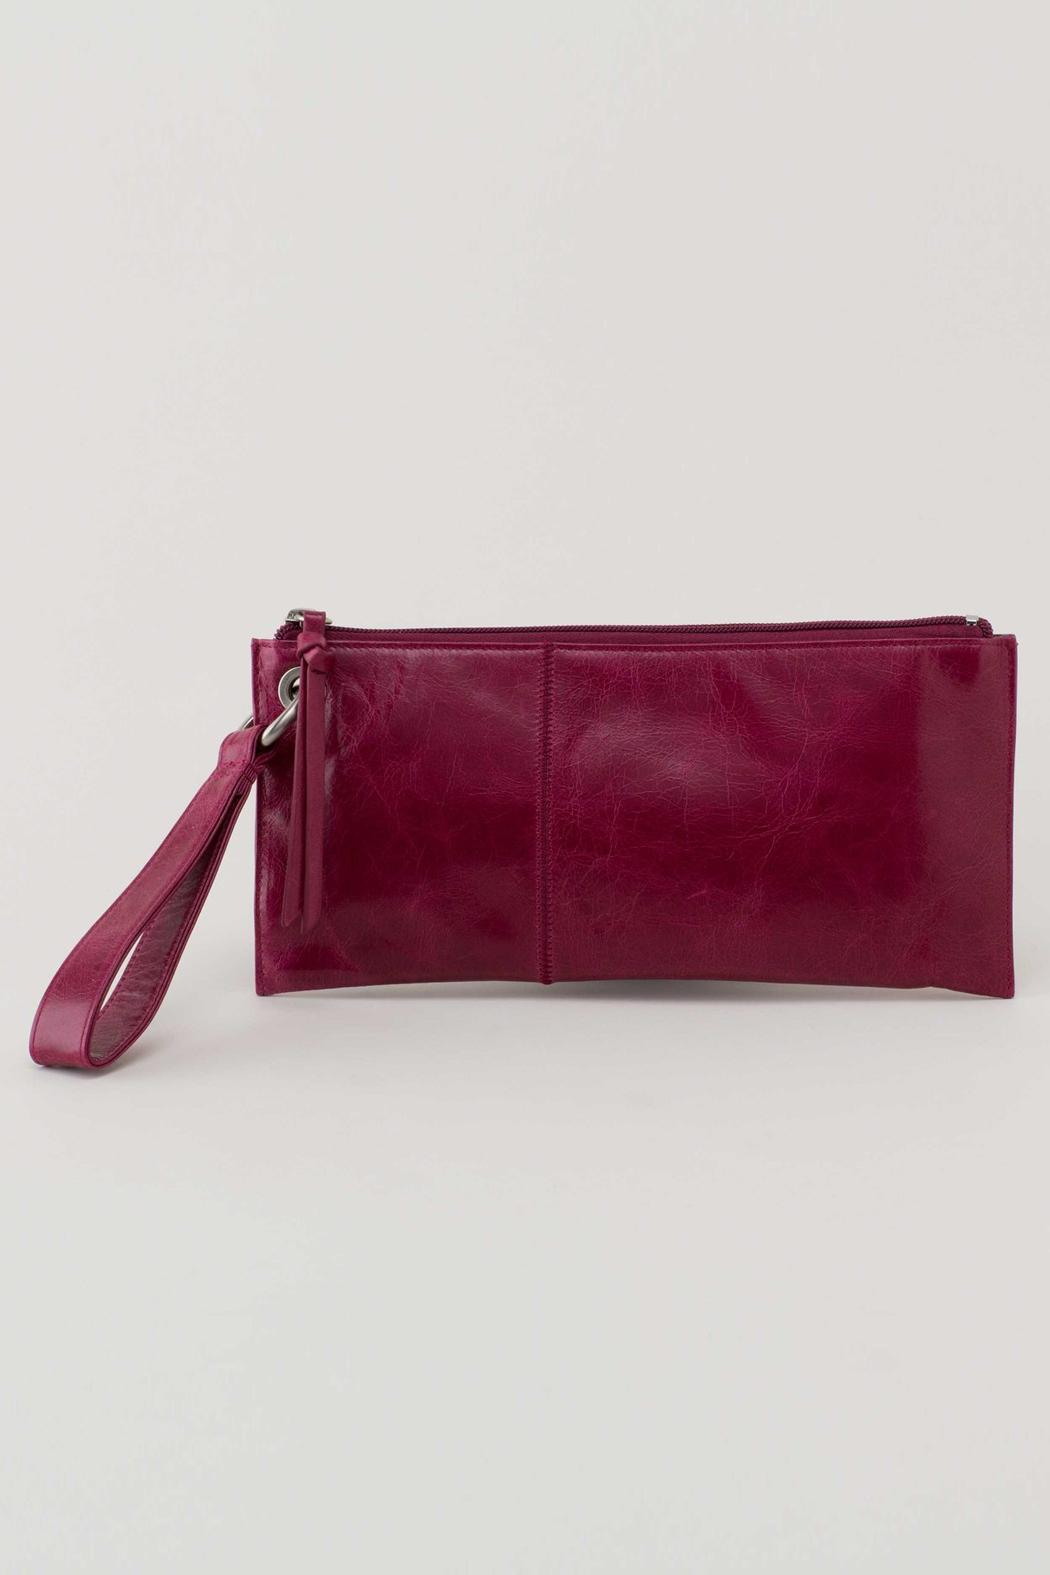 VIDA Leather Statement Clutch - Stunning Clutch by VIDA fPkEvkJF